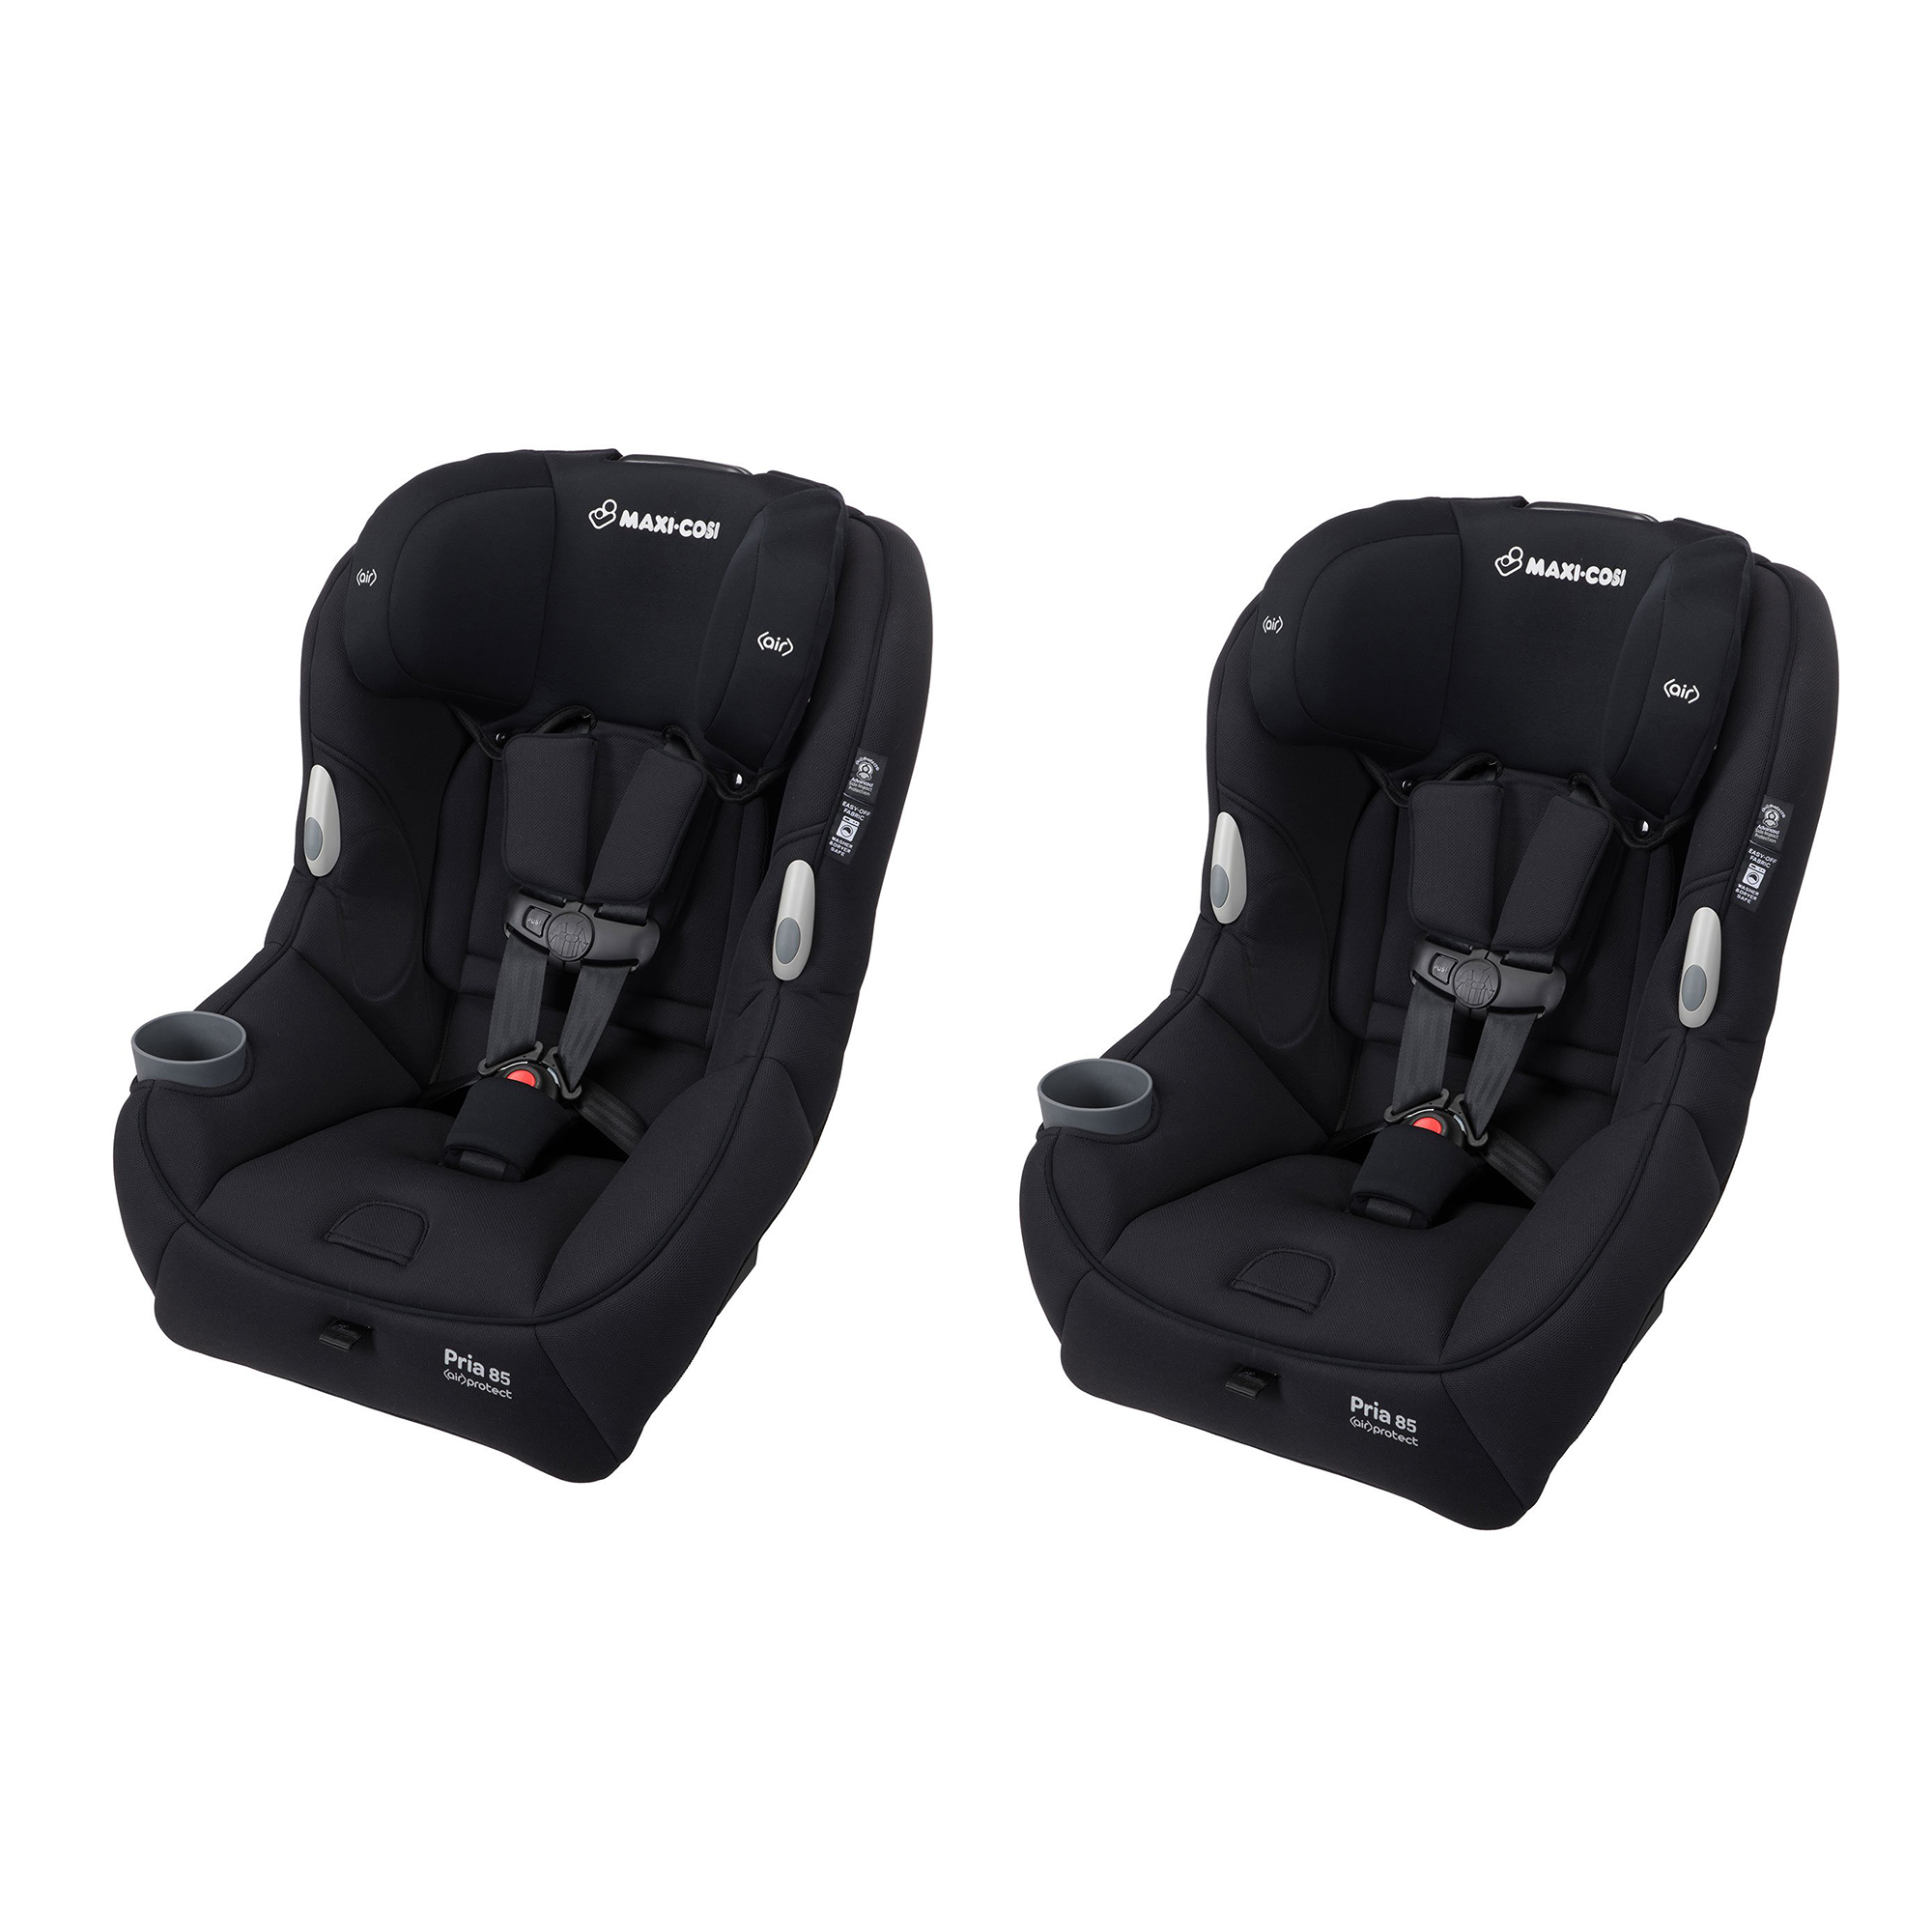 Details About Maxi Cosi Pria 85 Convertible 14 Lb Infant Child Car Seat Black 2 Pack